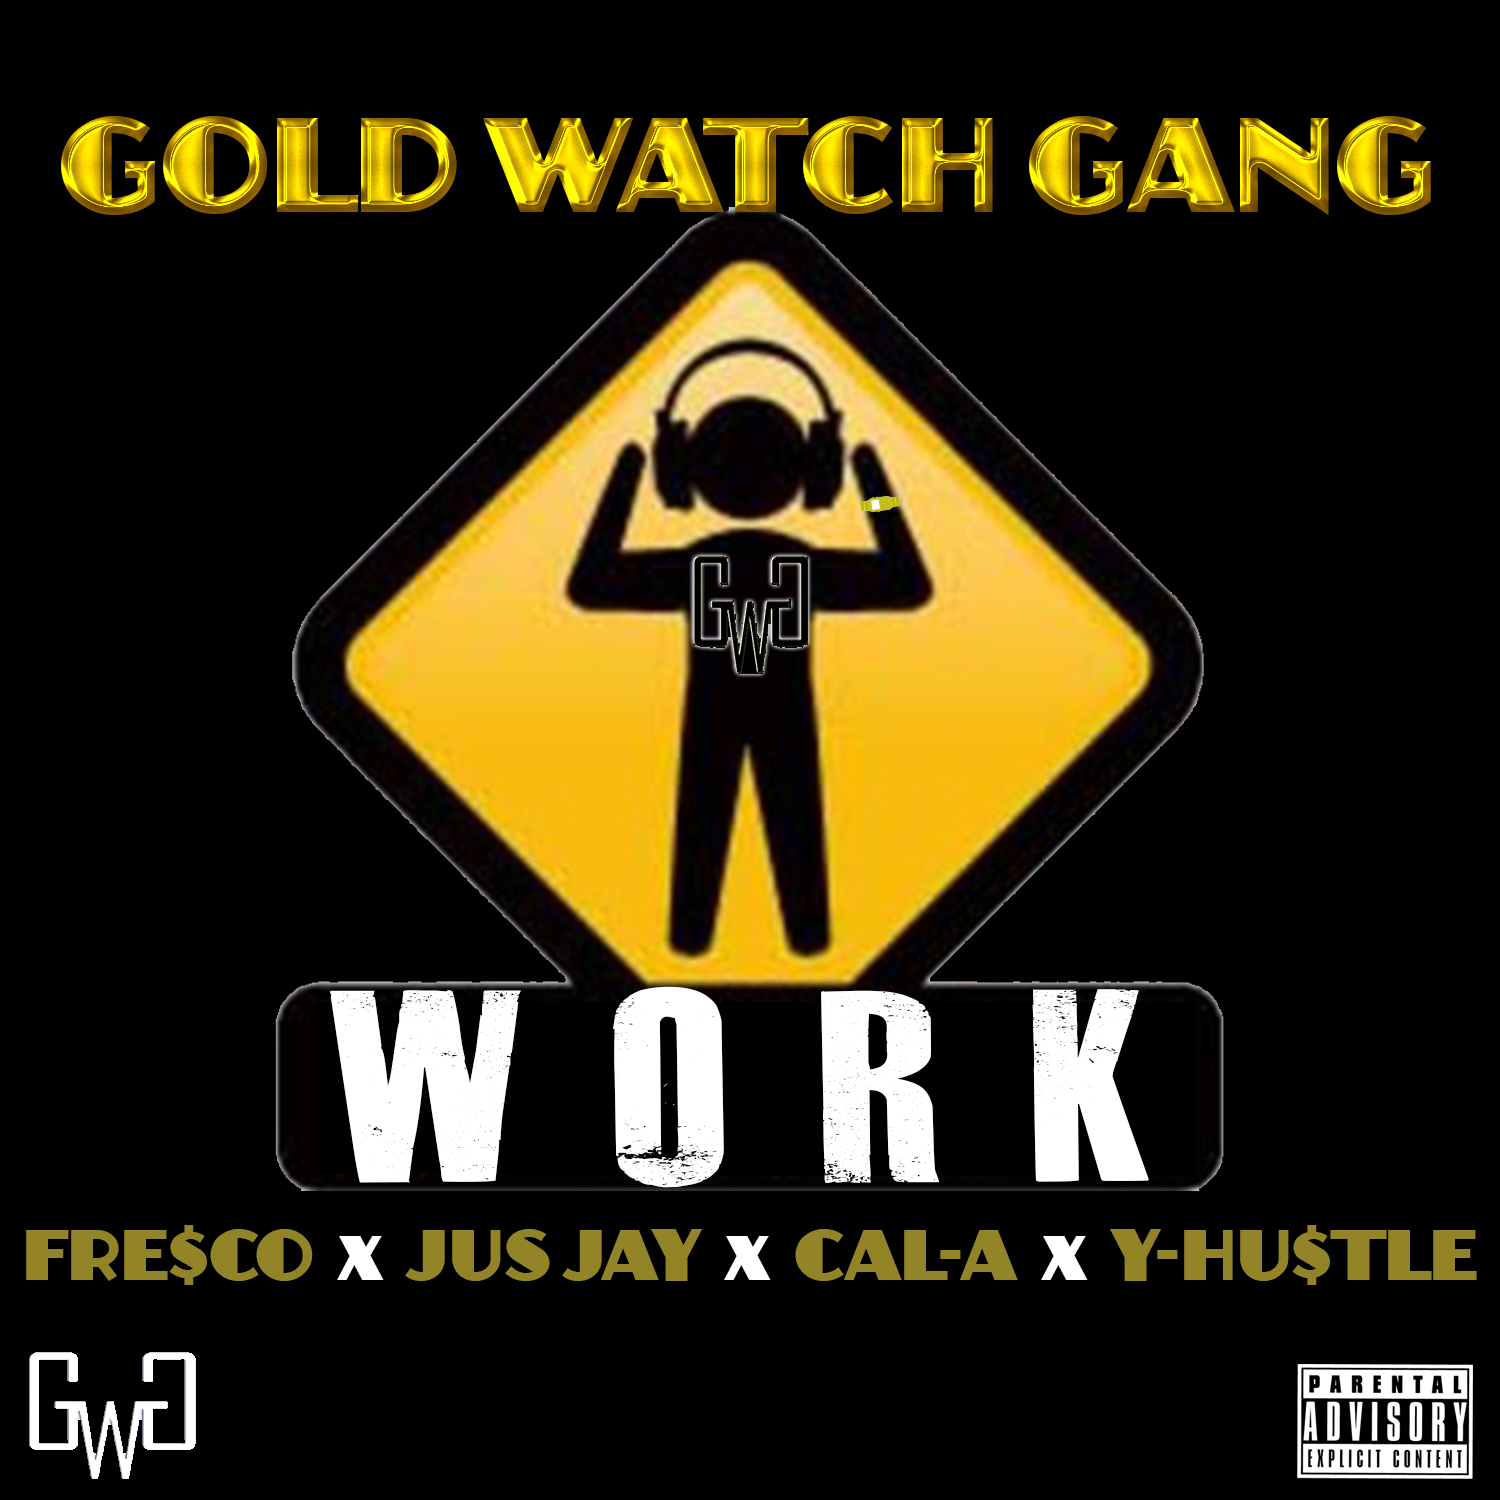 Gold Watch Gang - Work ft. Fre$co x Jus Jay x Cal-A x Y-Hu$tle [Thizzler.com]